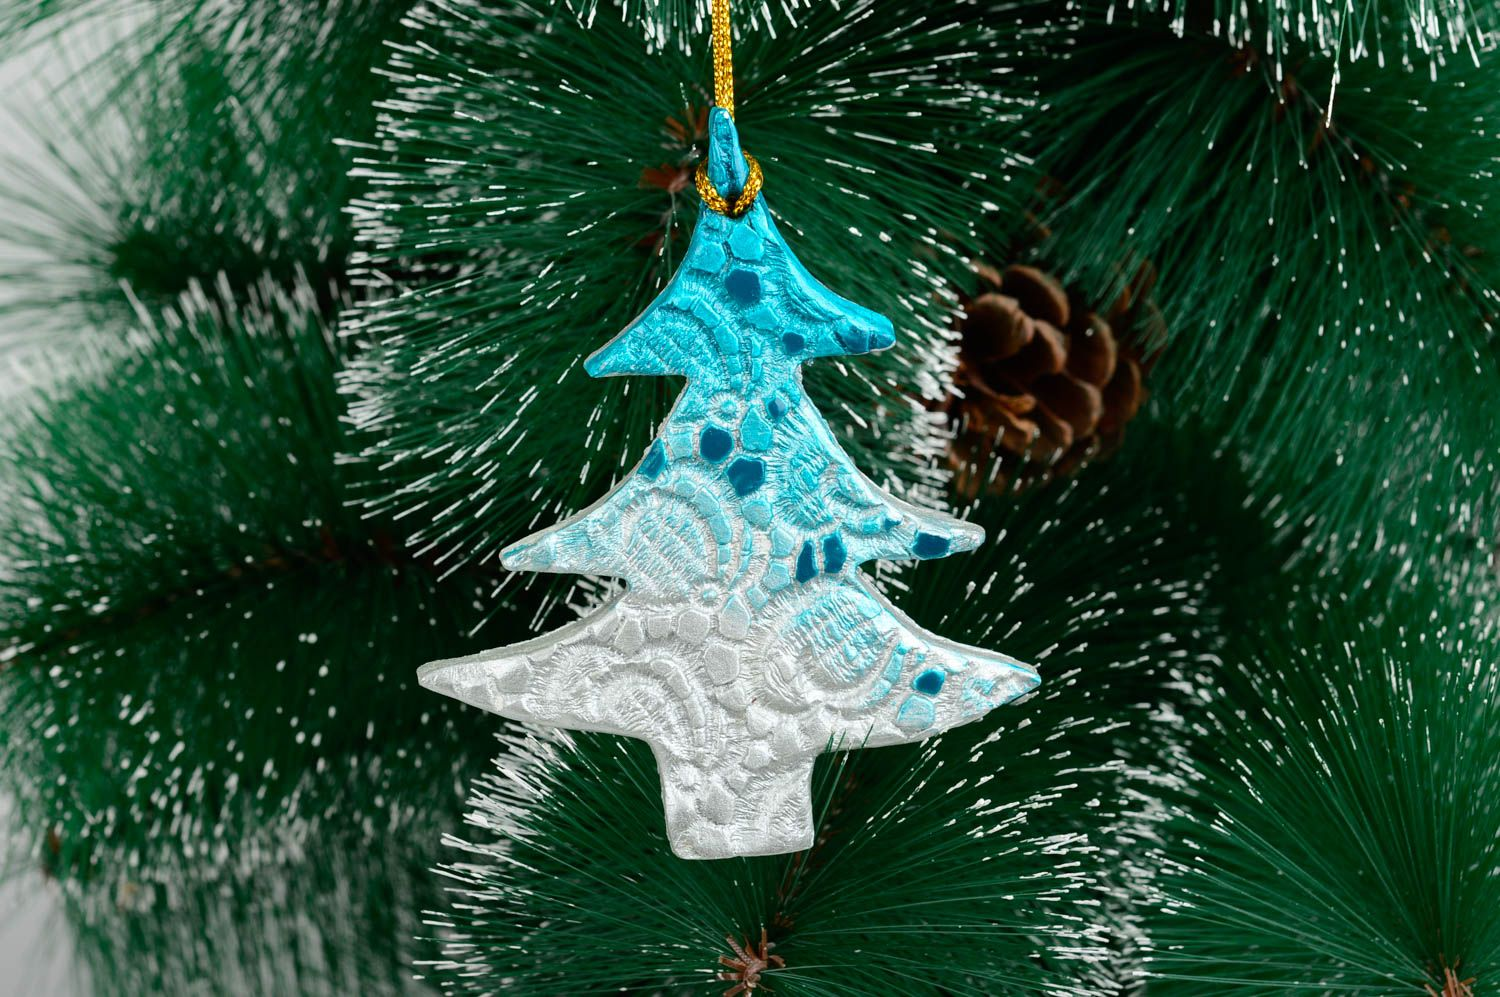 Ceramic Christmas Tree Decorations.Designer Christmas Tree Toys Ceramic Christmas Decor Holiday Idea Decor Use Only